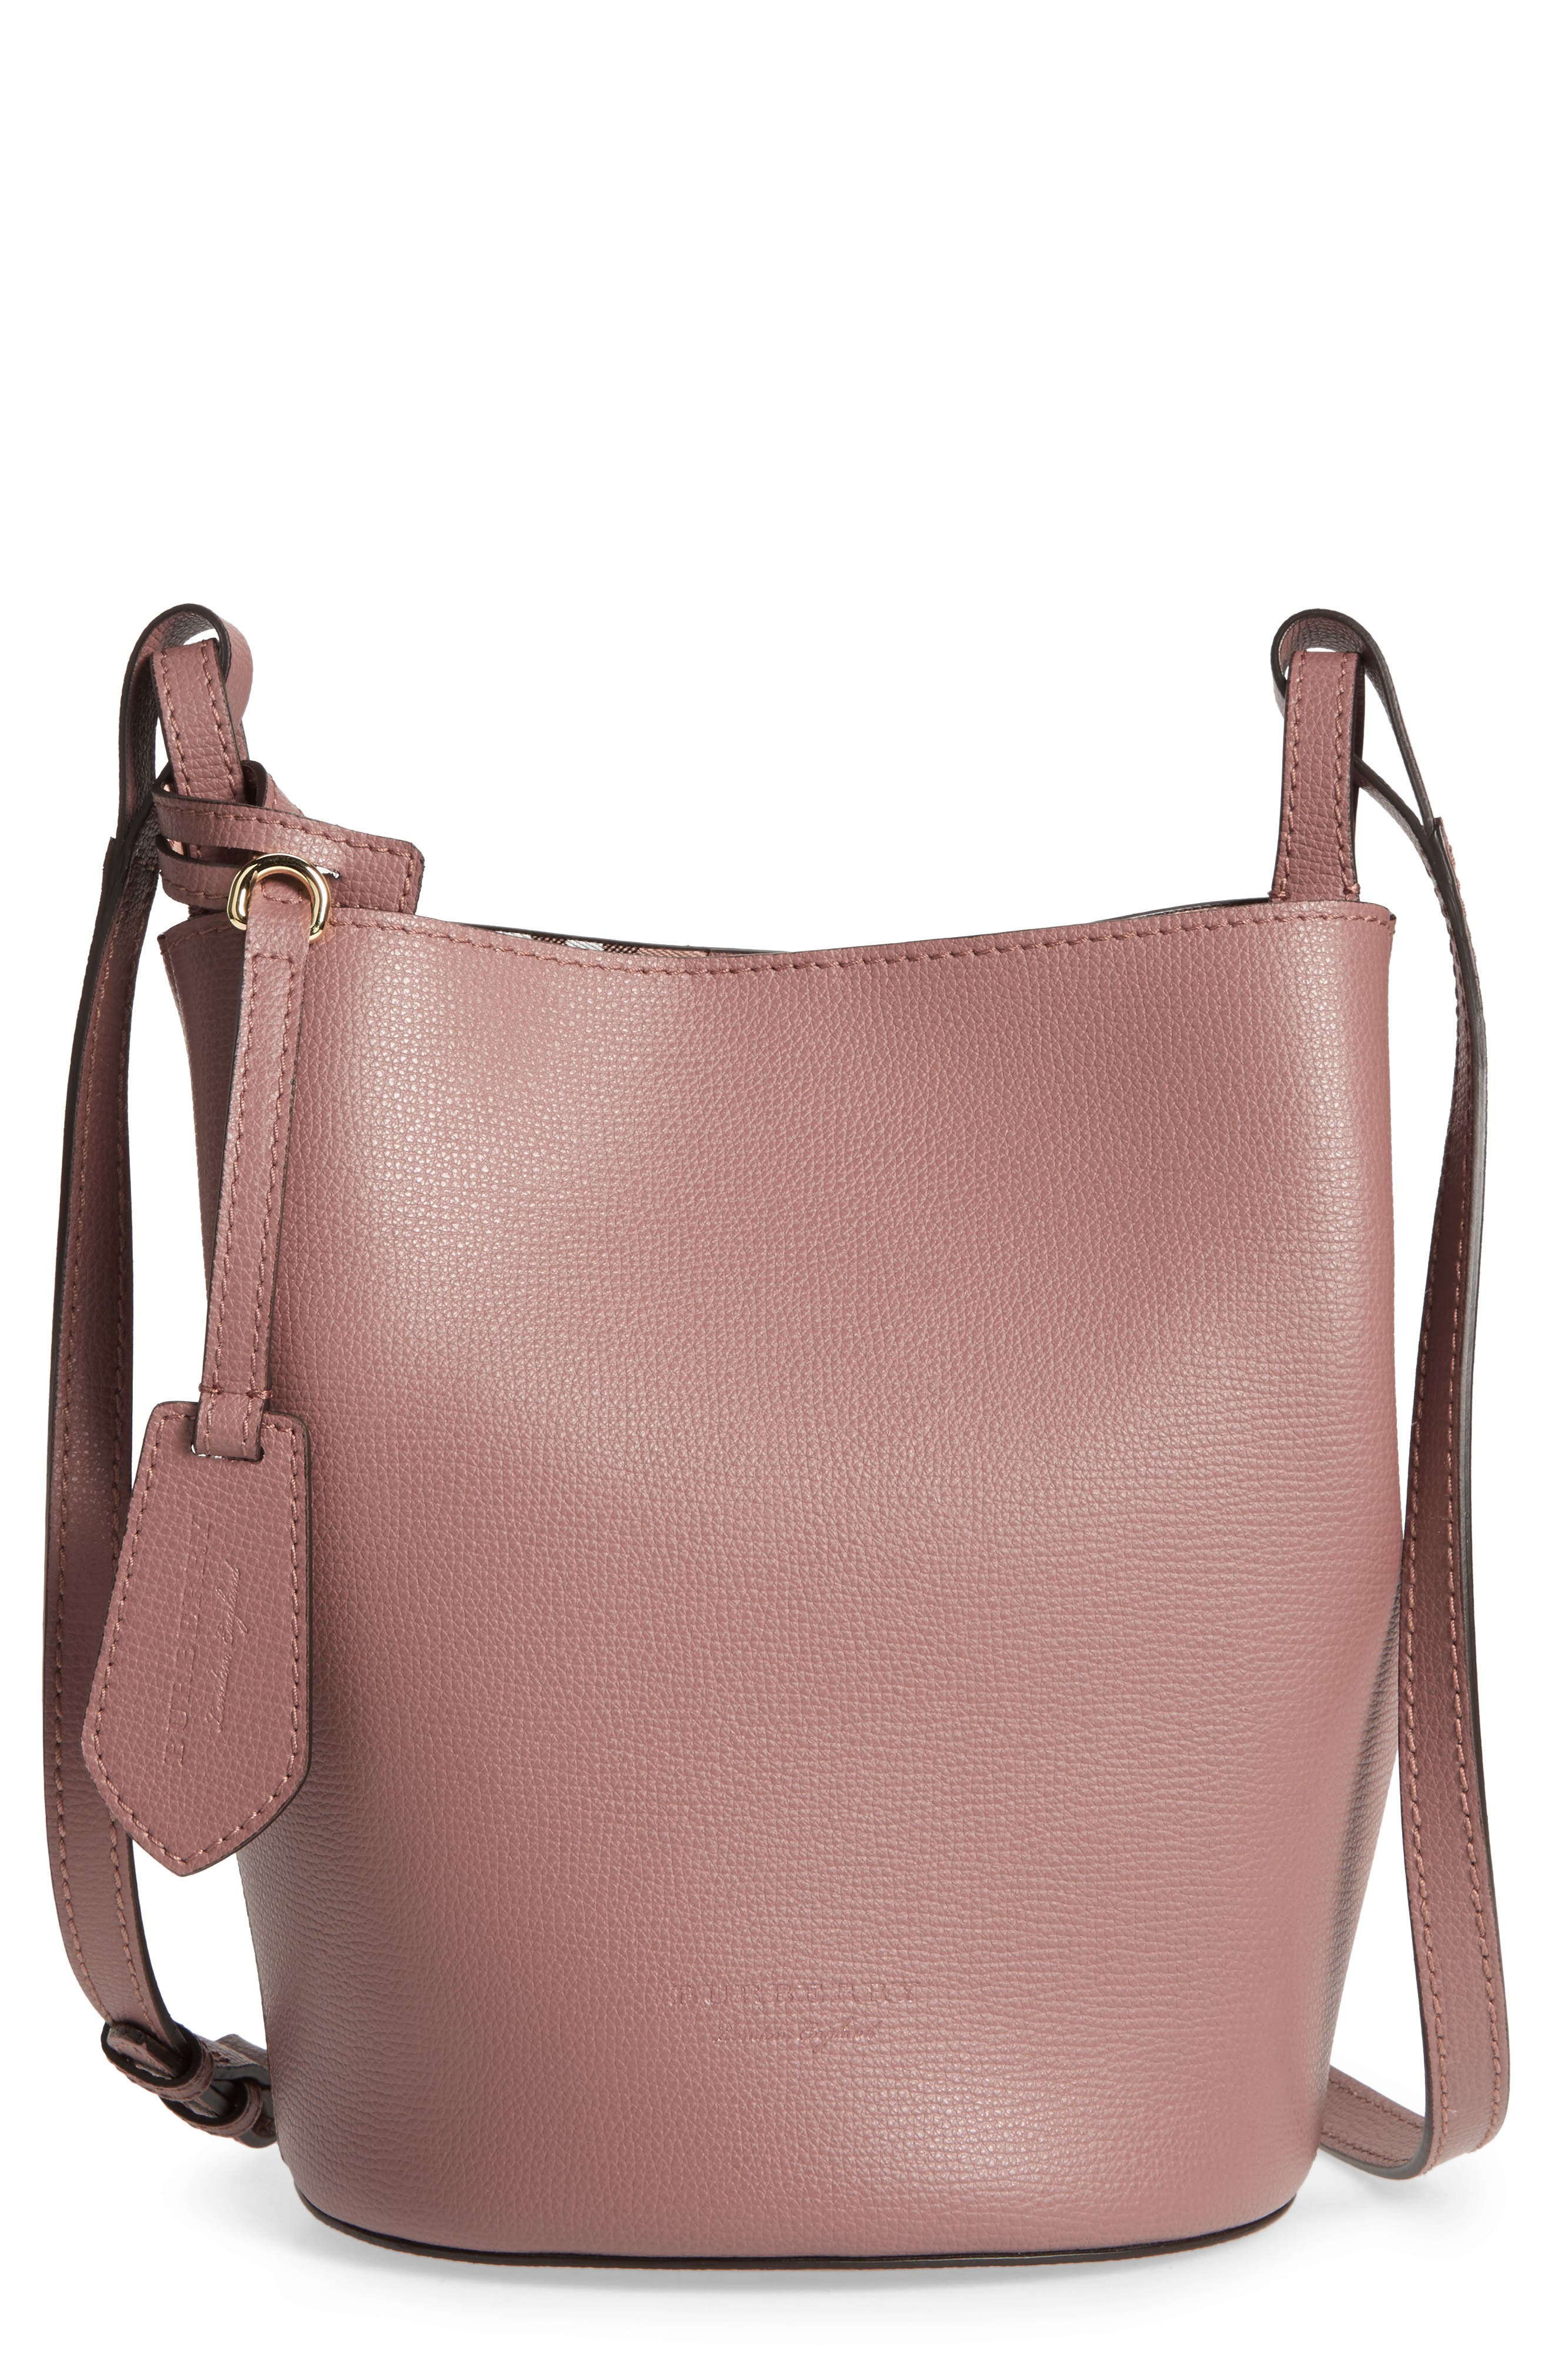 Burberry Small Lorne Leather Bucket Bag